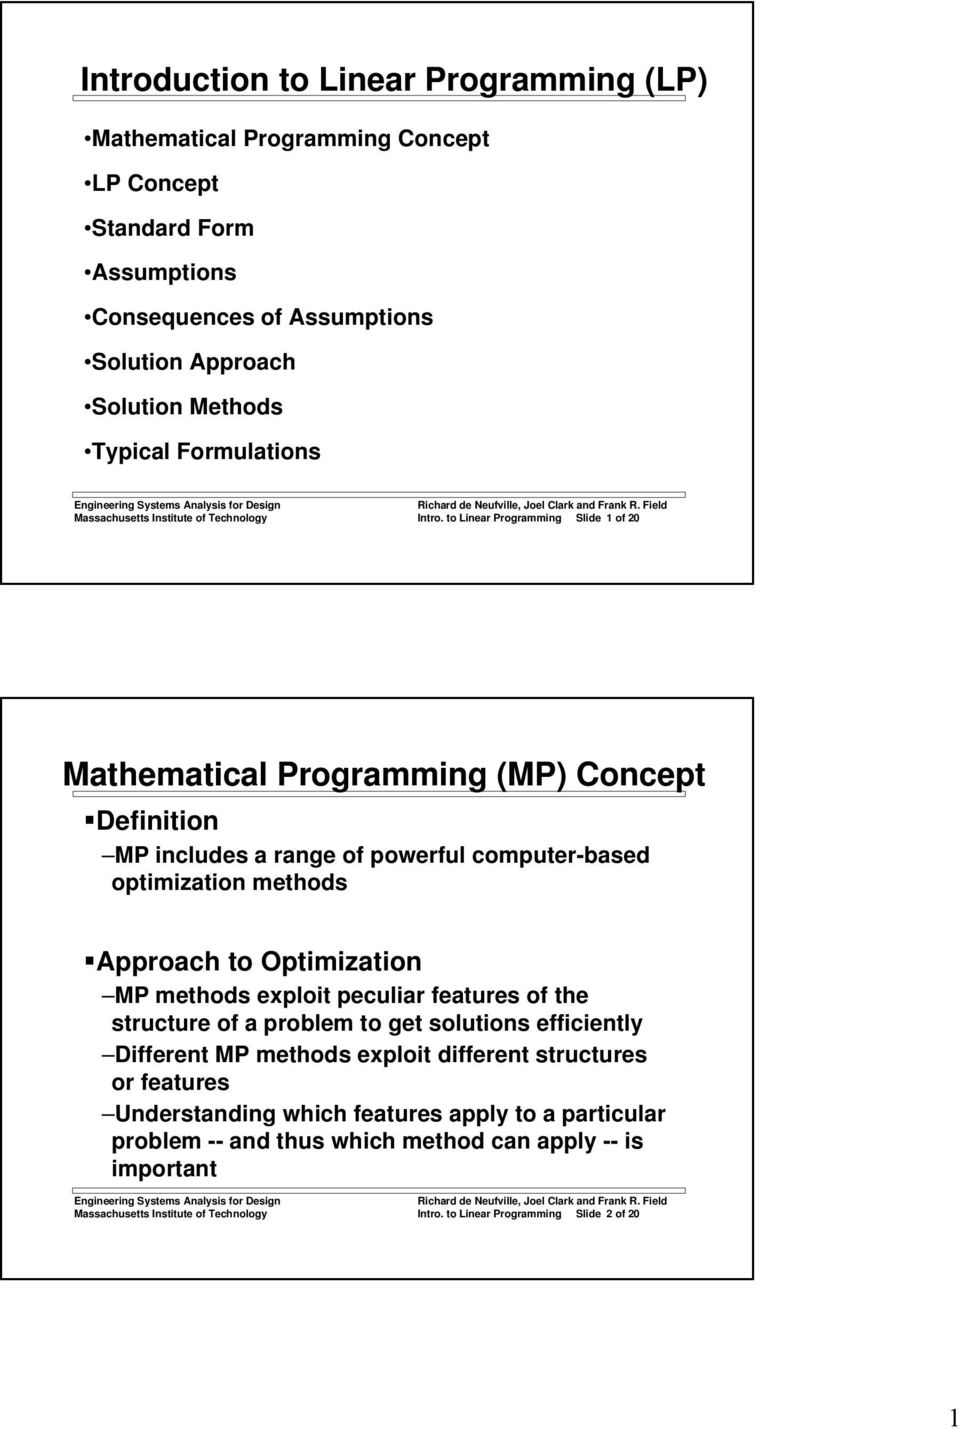 to Linear Programming Slide 1 of 20 Mathematical Programming (MP) Concept Definition MP includes a range of powerful computer-based optimization methods Approach to Optimization MP methods